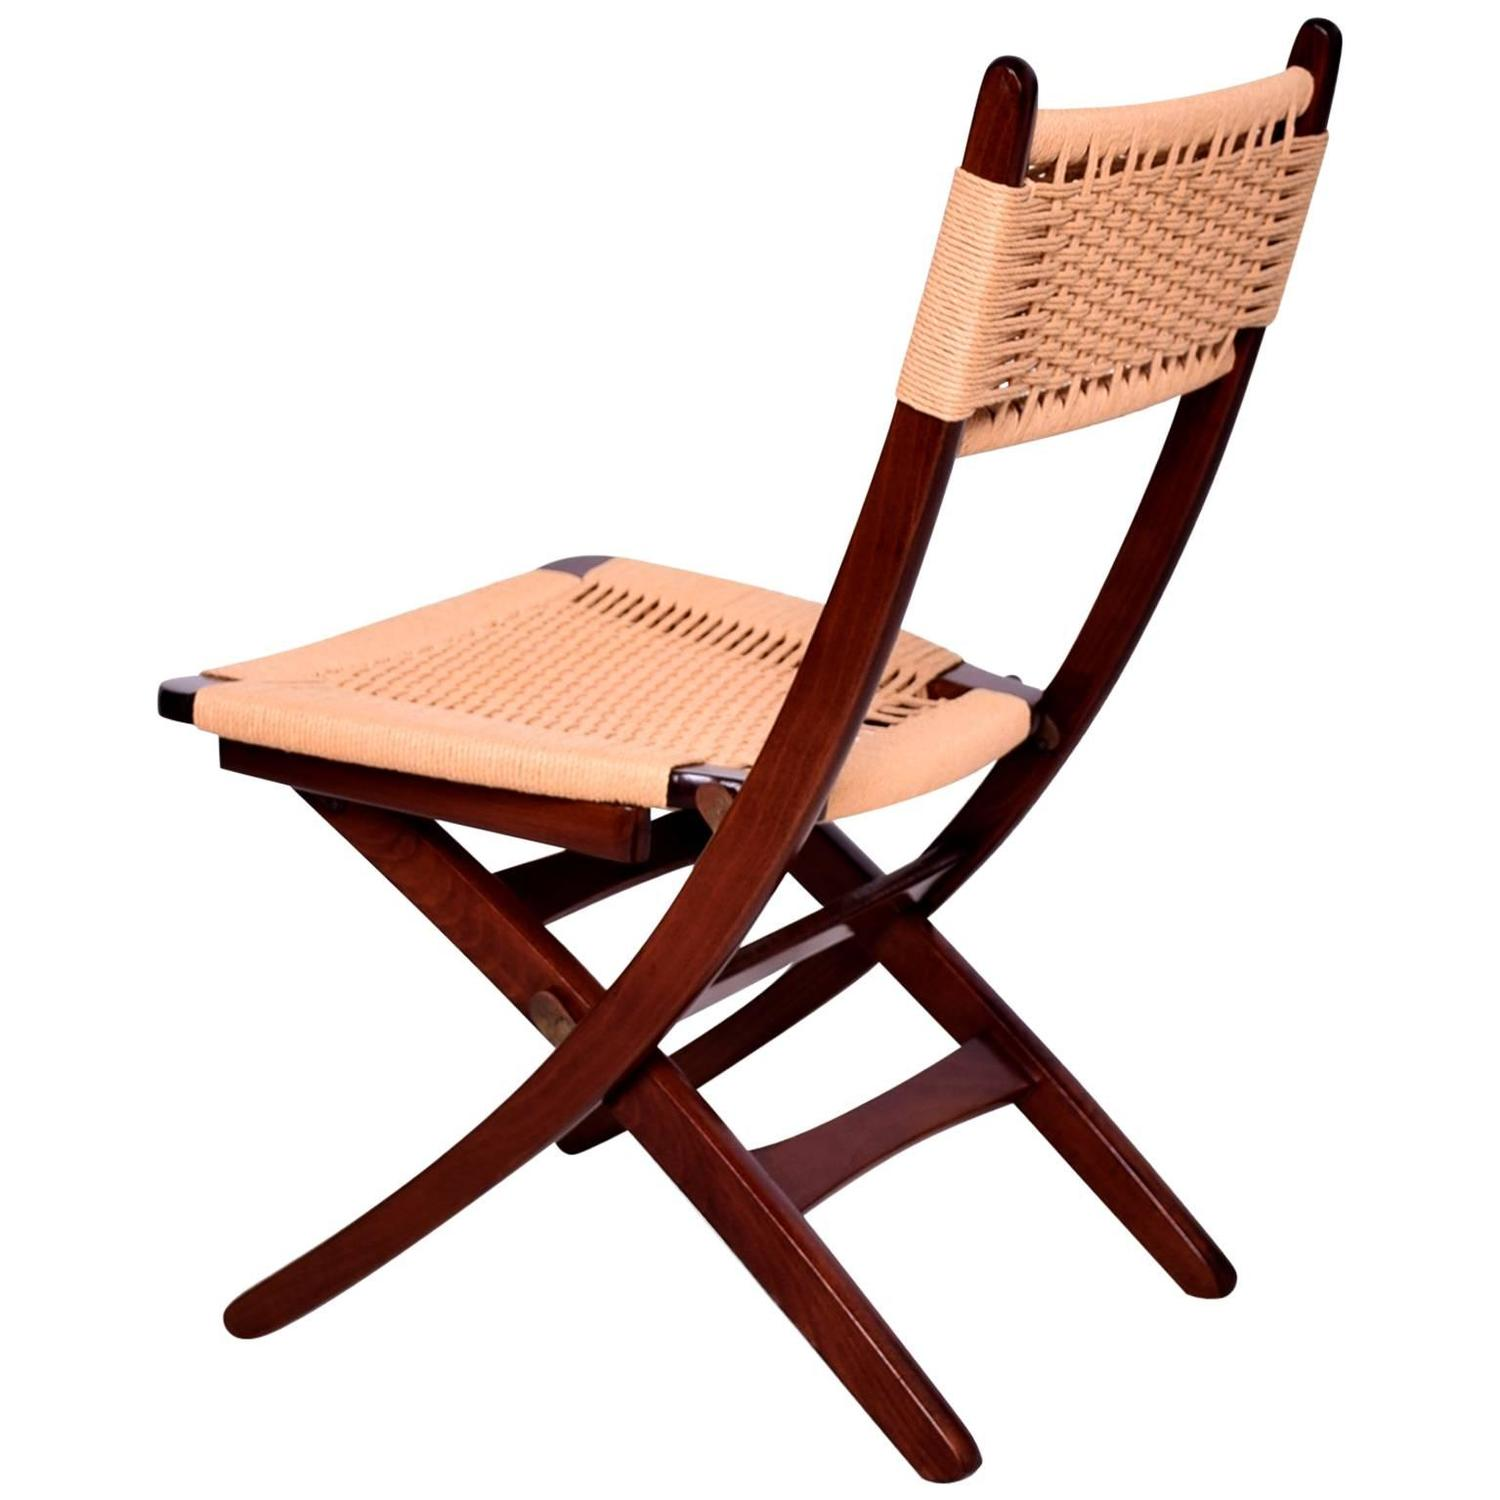 folding chairs for sale. Mid-Century Danish Modern Rope Folding Chairs Wegner Style For Sale At 1stdibs